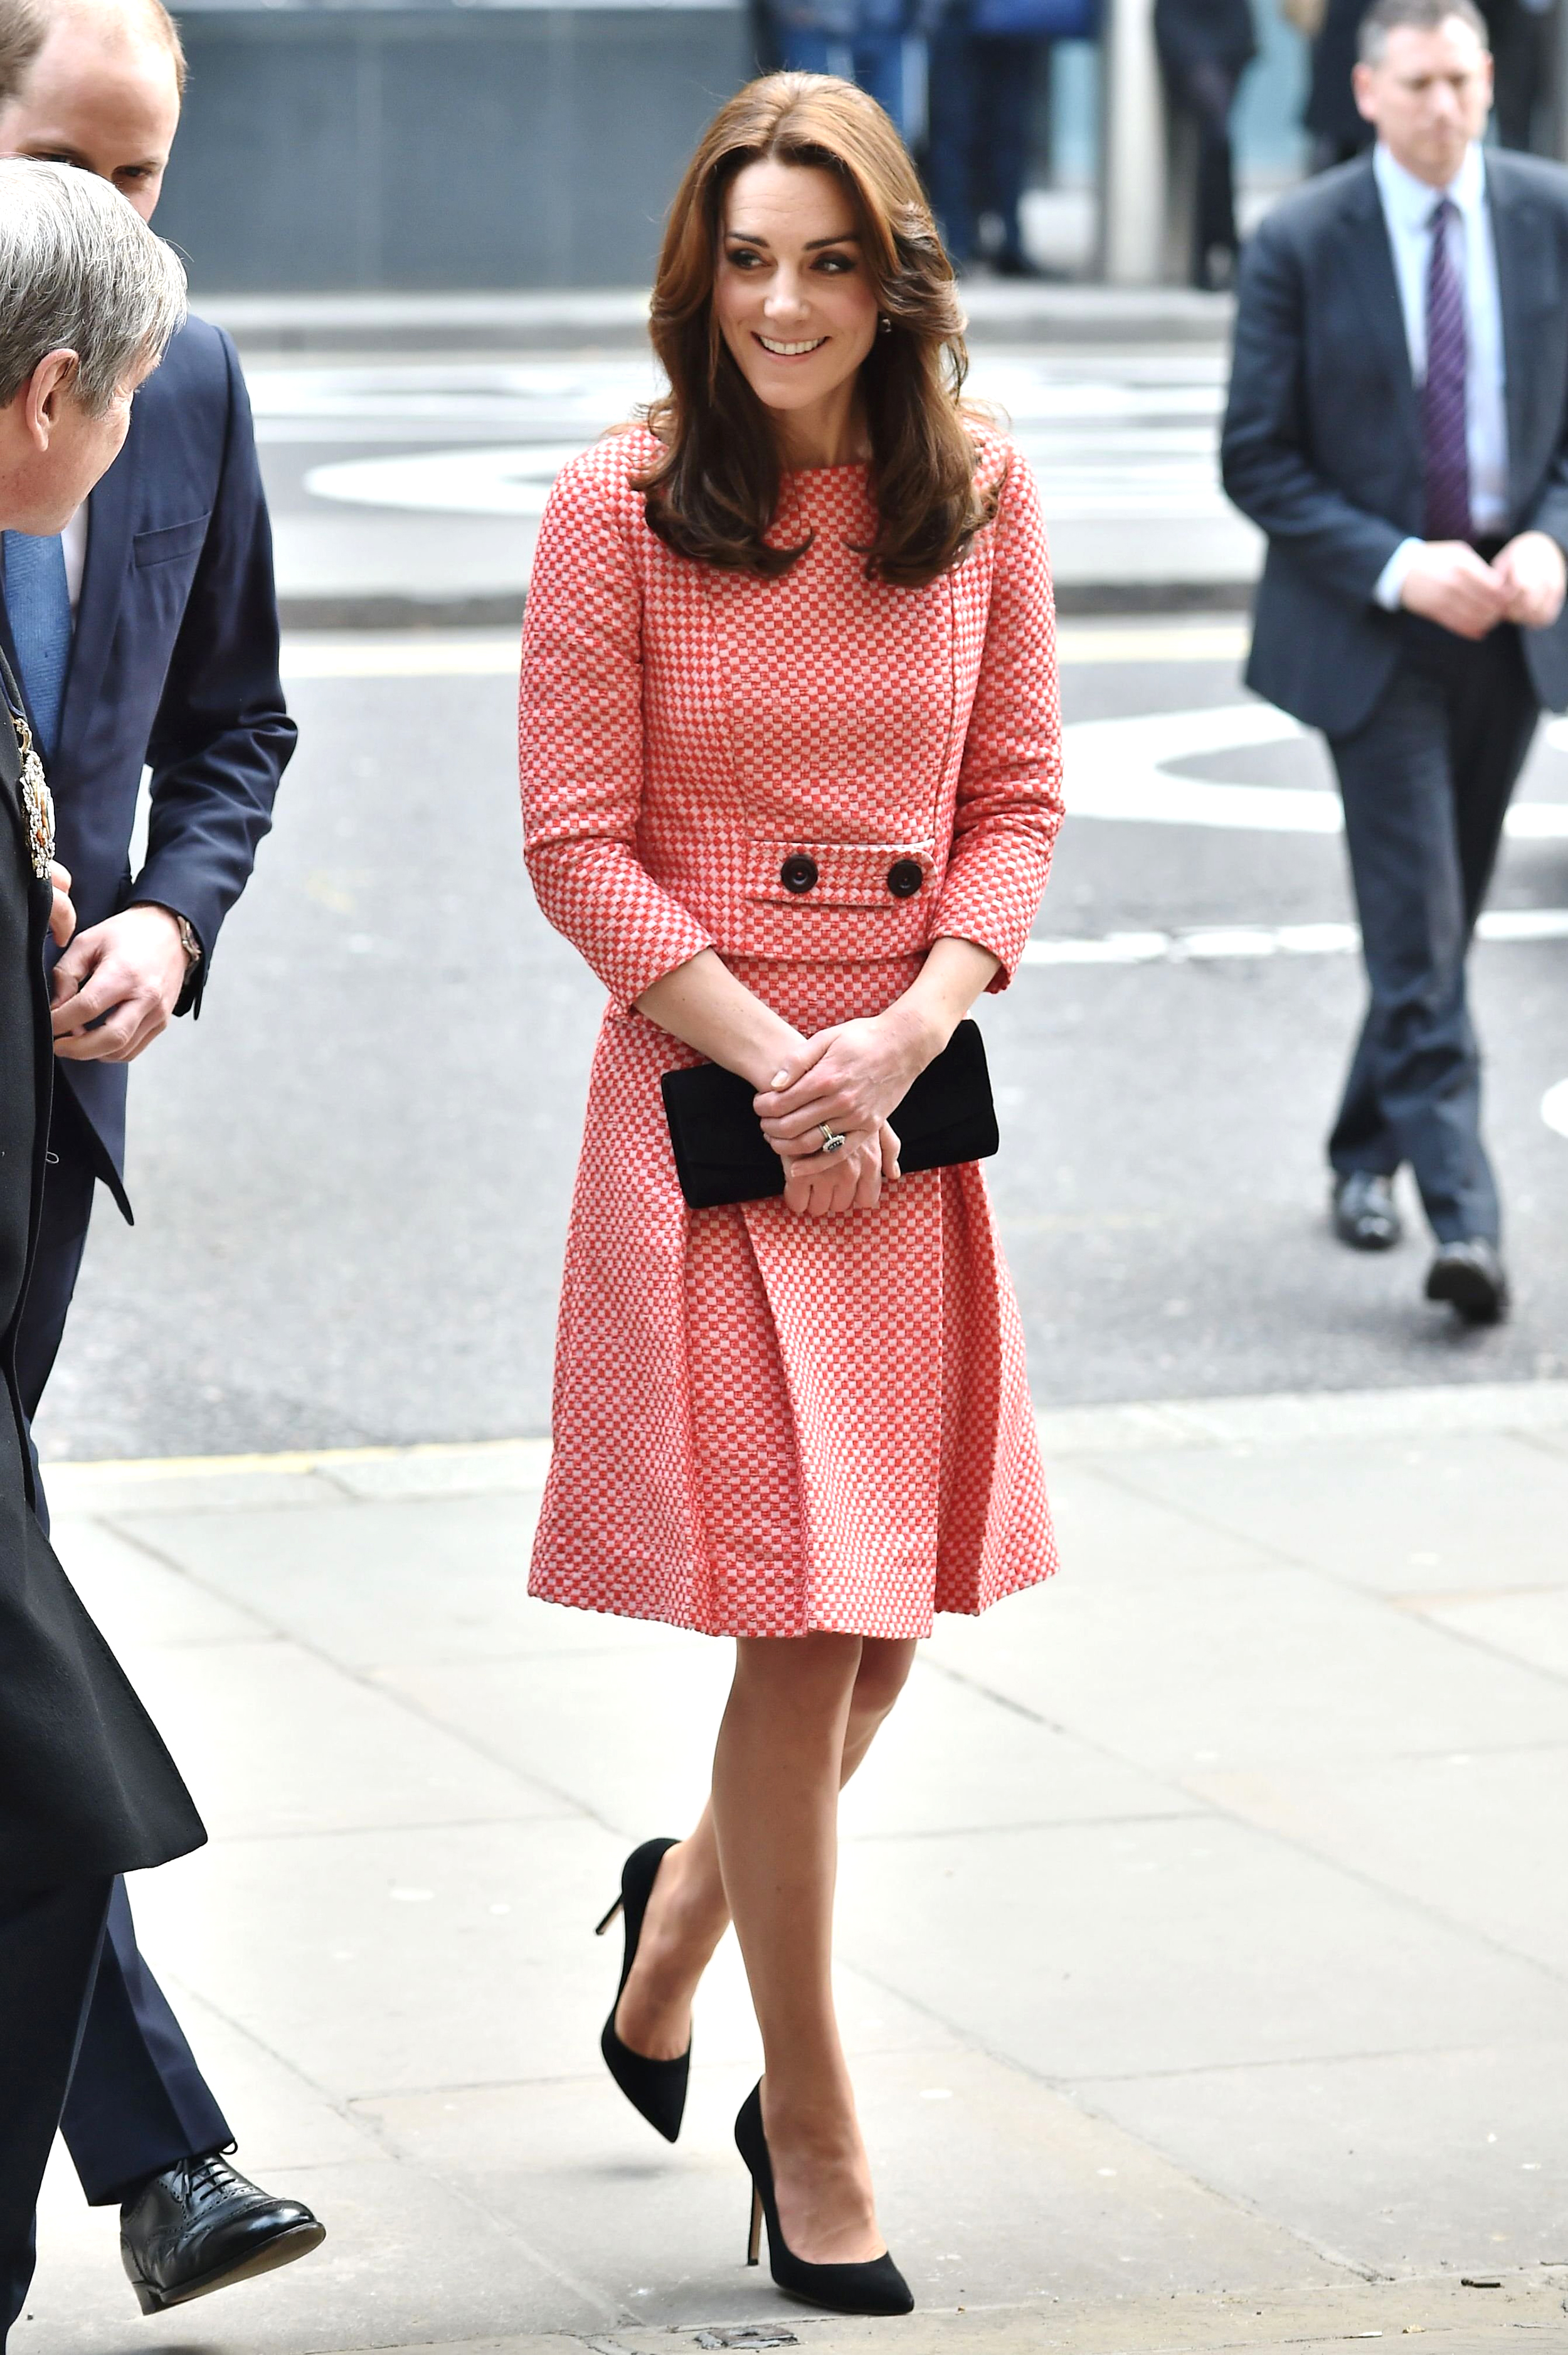 Catherine Duchess of Cambridge                                   The Duke and Duchess of Cambridge visits the mentoring program of the XLP project in London on March 11, 2016.